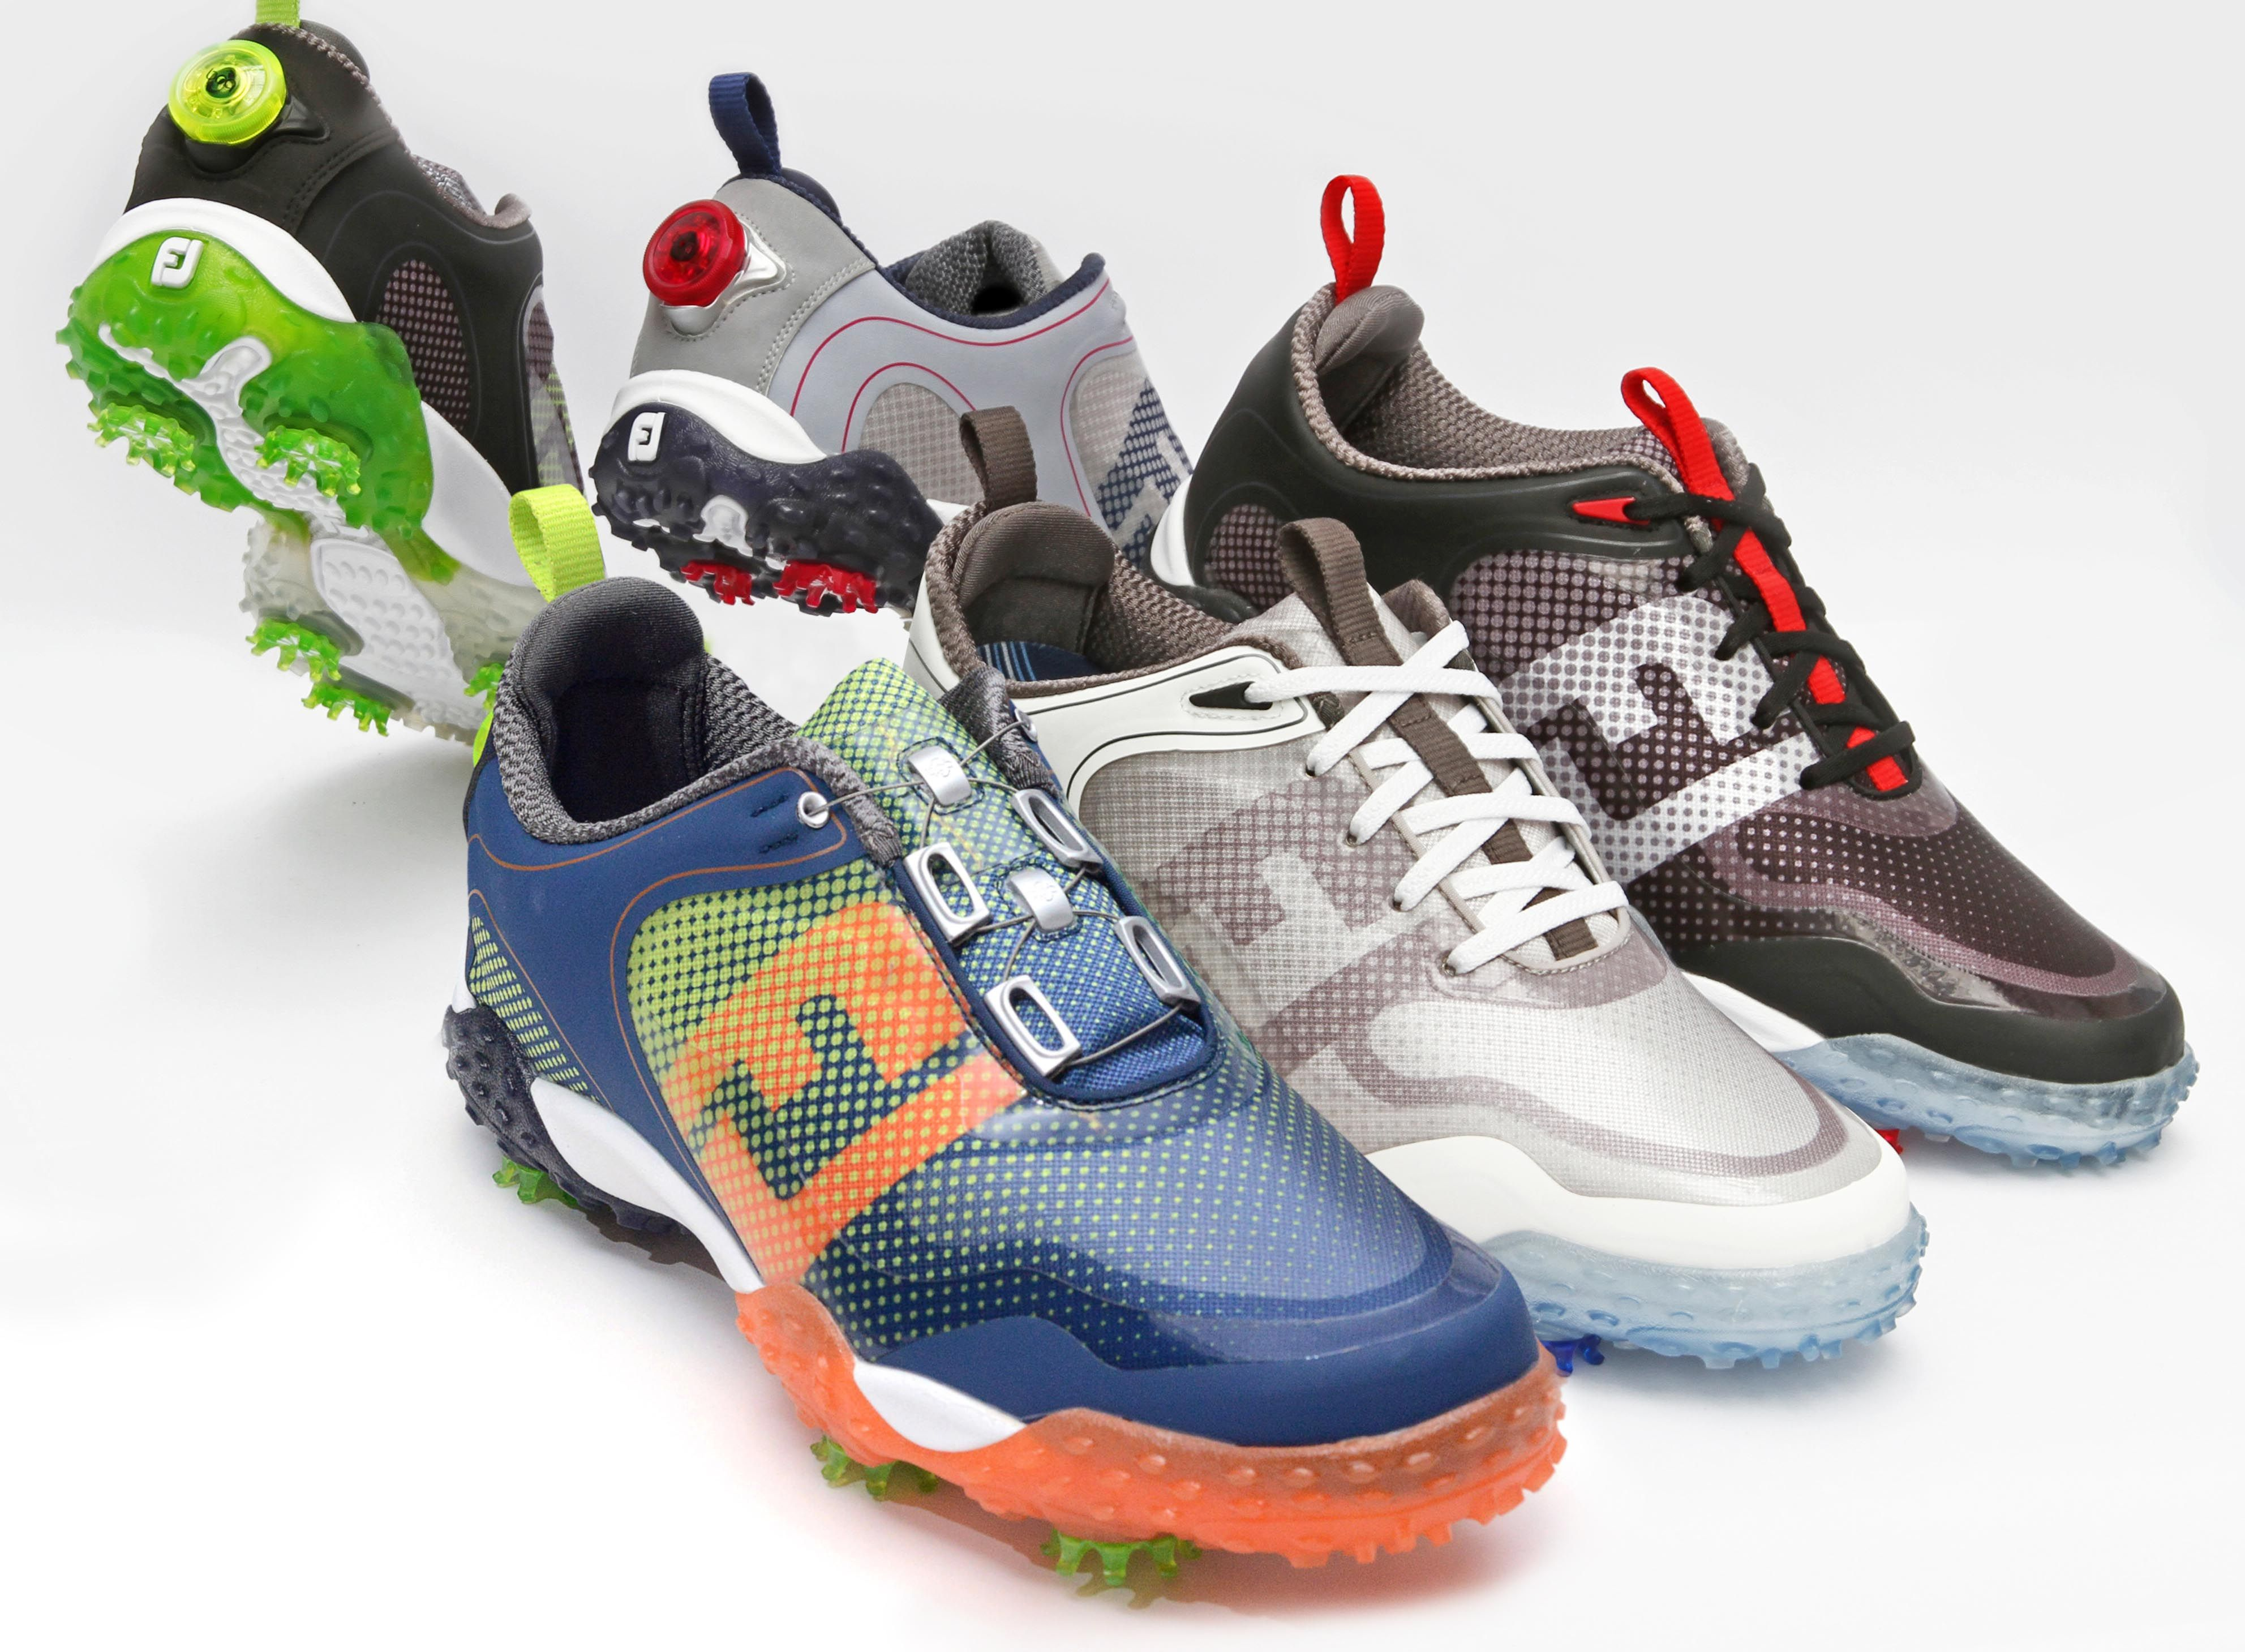 Unleash your power with FreeStyle golf shoes for men. Engineered to deliver  an incredibly flexible